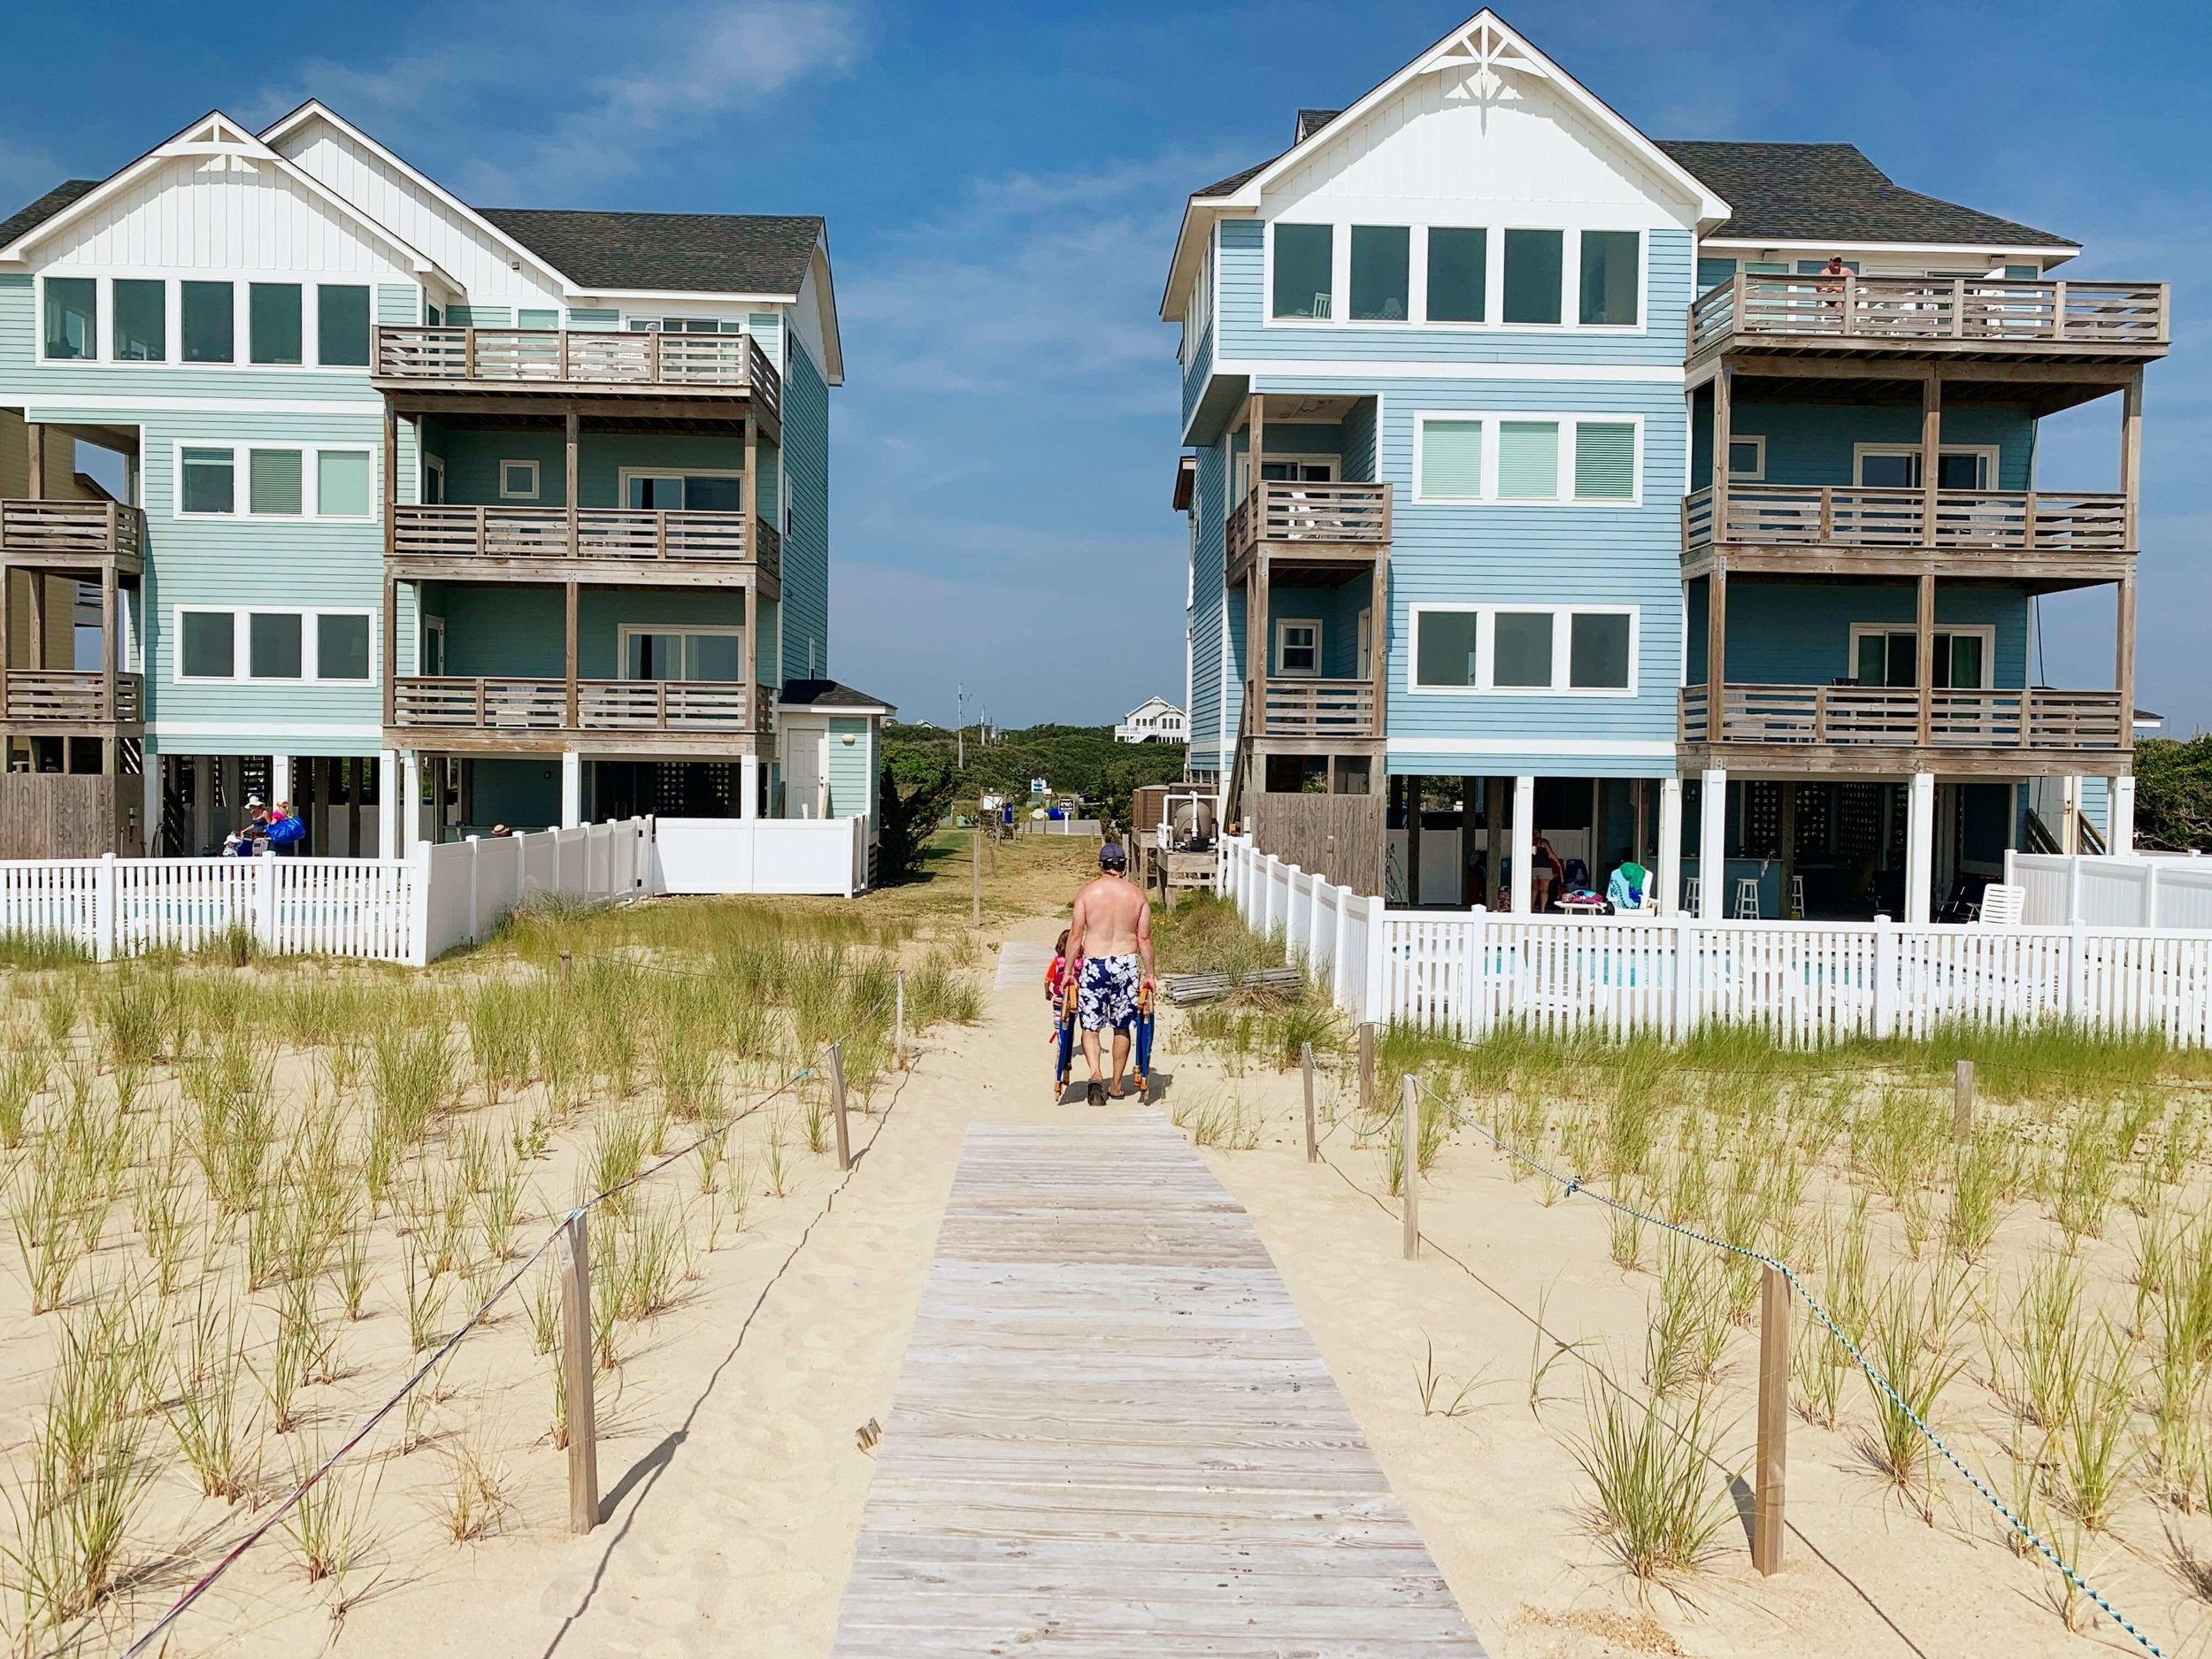 Path from the beach - outer banks, nc